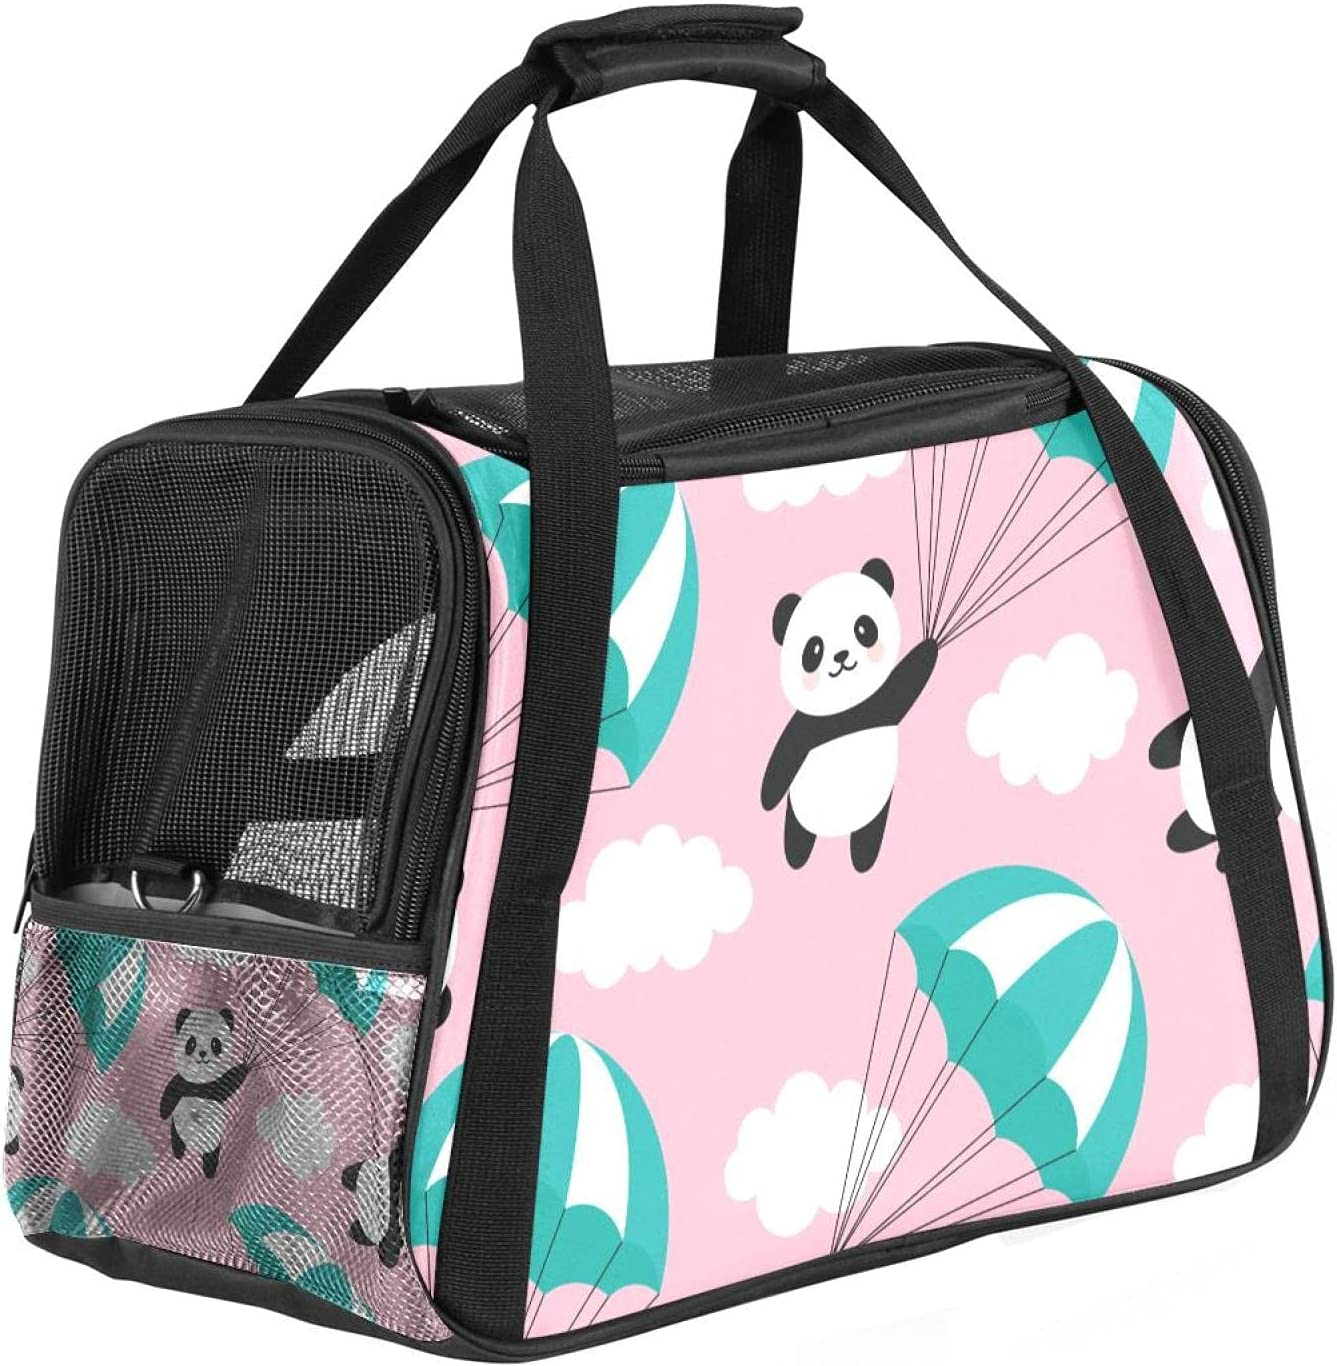 Airline Approved Soft Sided Pet Tote Carrier Series Bombing new work Daily bargain sale Profile Low